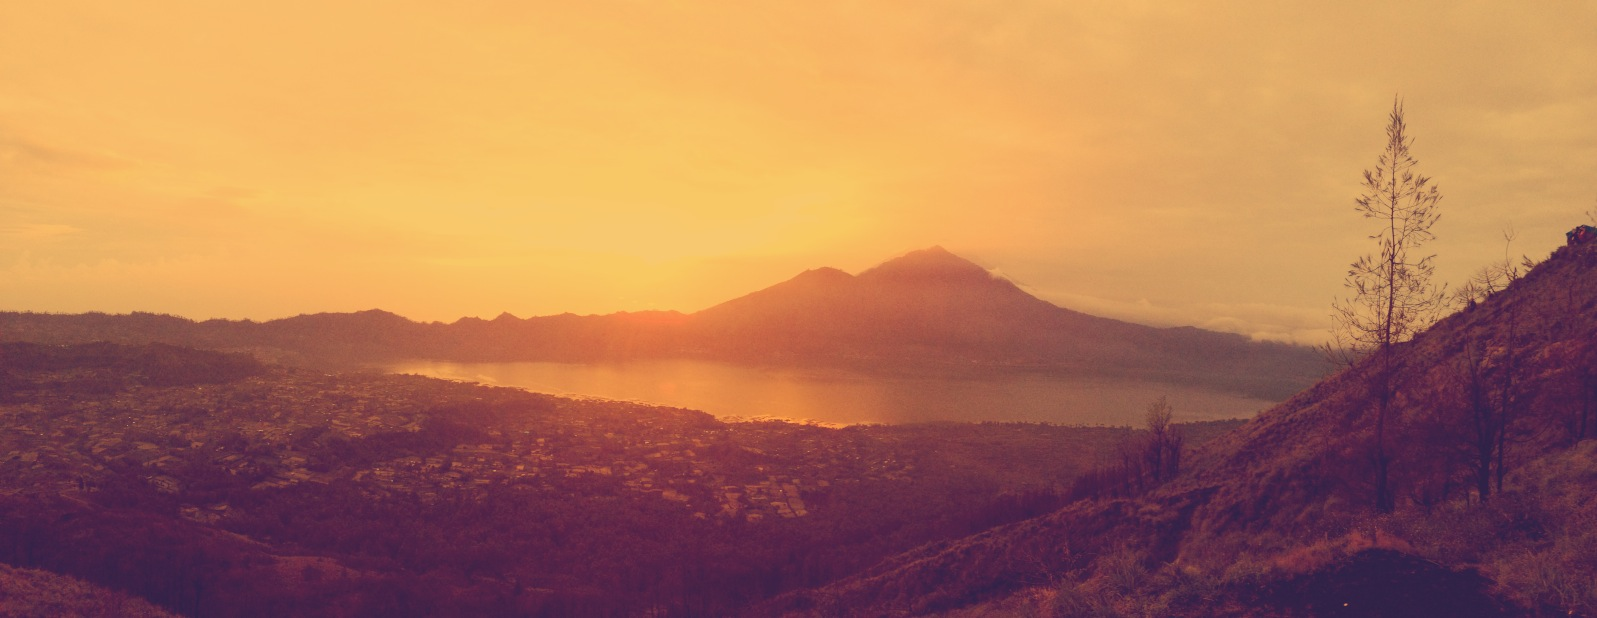 Morning Glory: From Where I Stand, Mt. Batur, Bali.